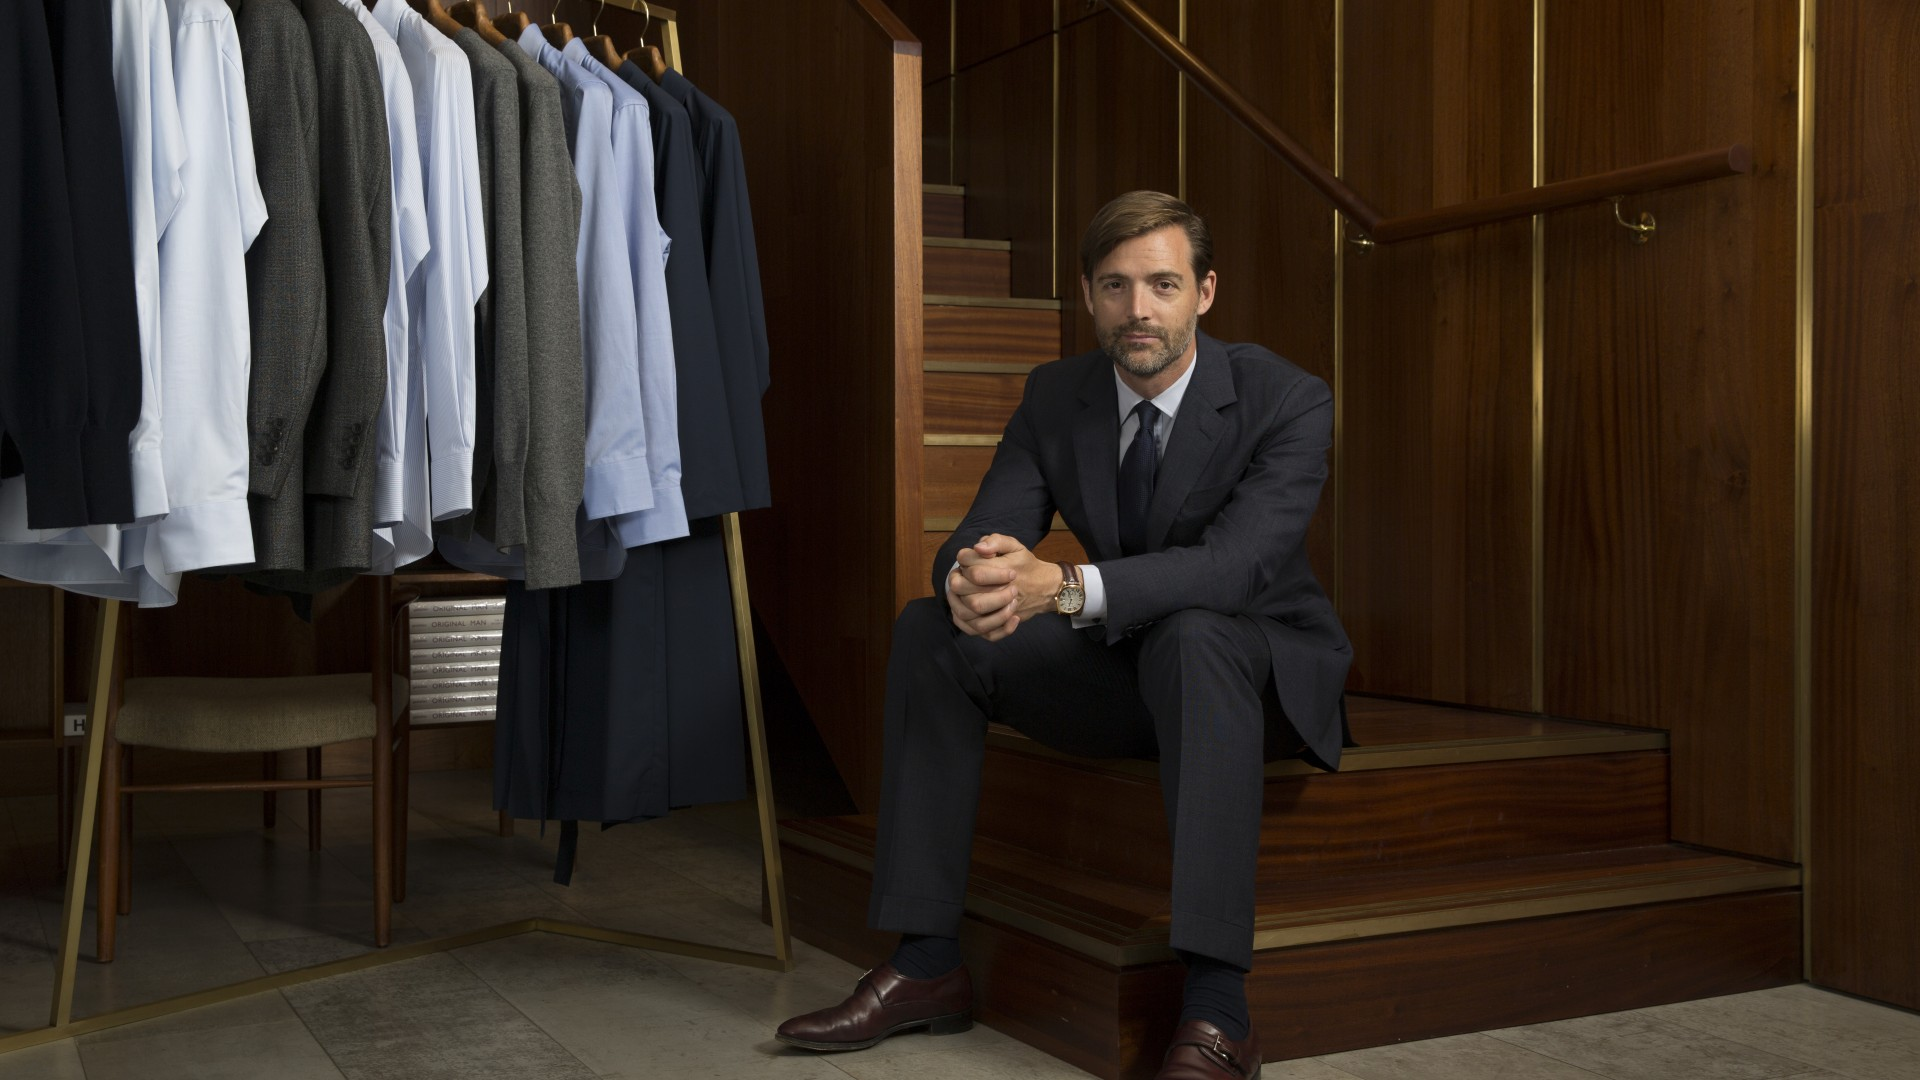 Patrick Grant on Savile Row's future, experimental designs and outdated silhouettes